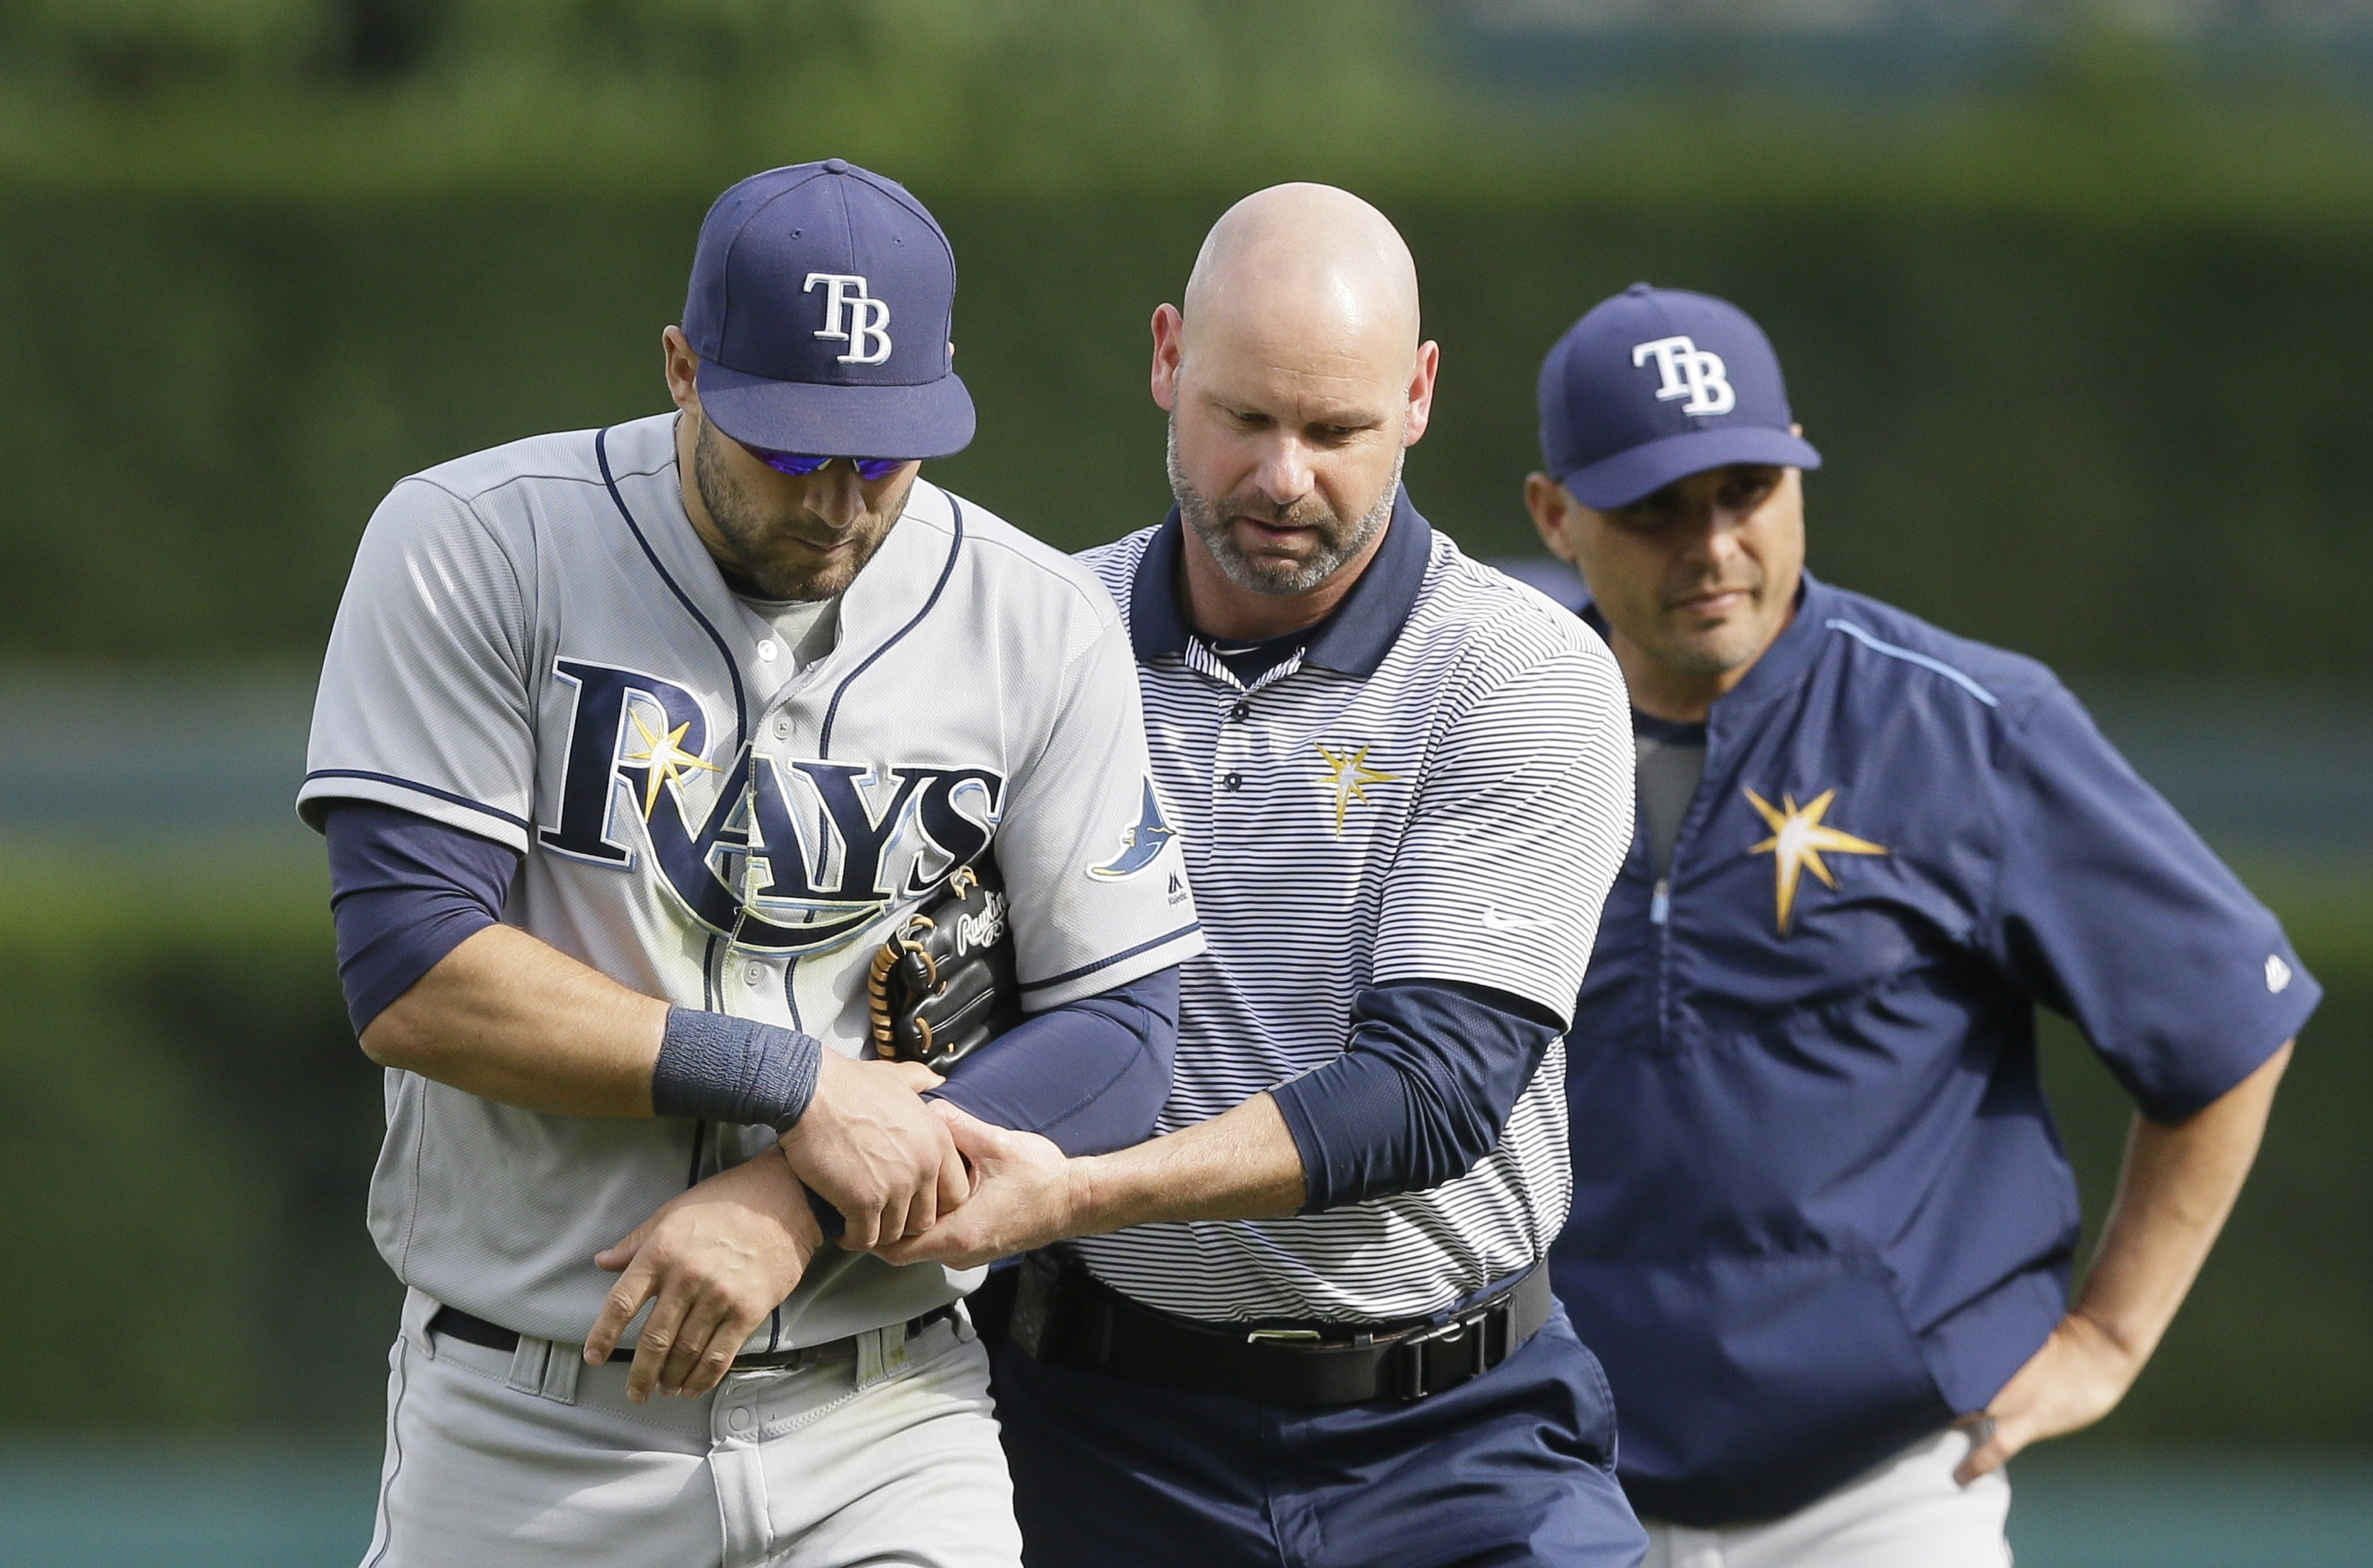 Tampa Bay Rays center fielder Kevin Kiermaier is helped off the field after getting injured diving for a single by Detroit Tigers' James McCann during the fifth inning of a baseball game, Saturday, May 21, 2016, in Detroit. (AP Photo/Carlos Osorio)